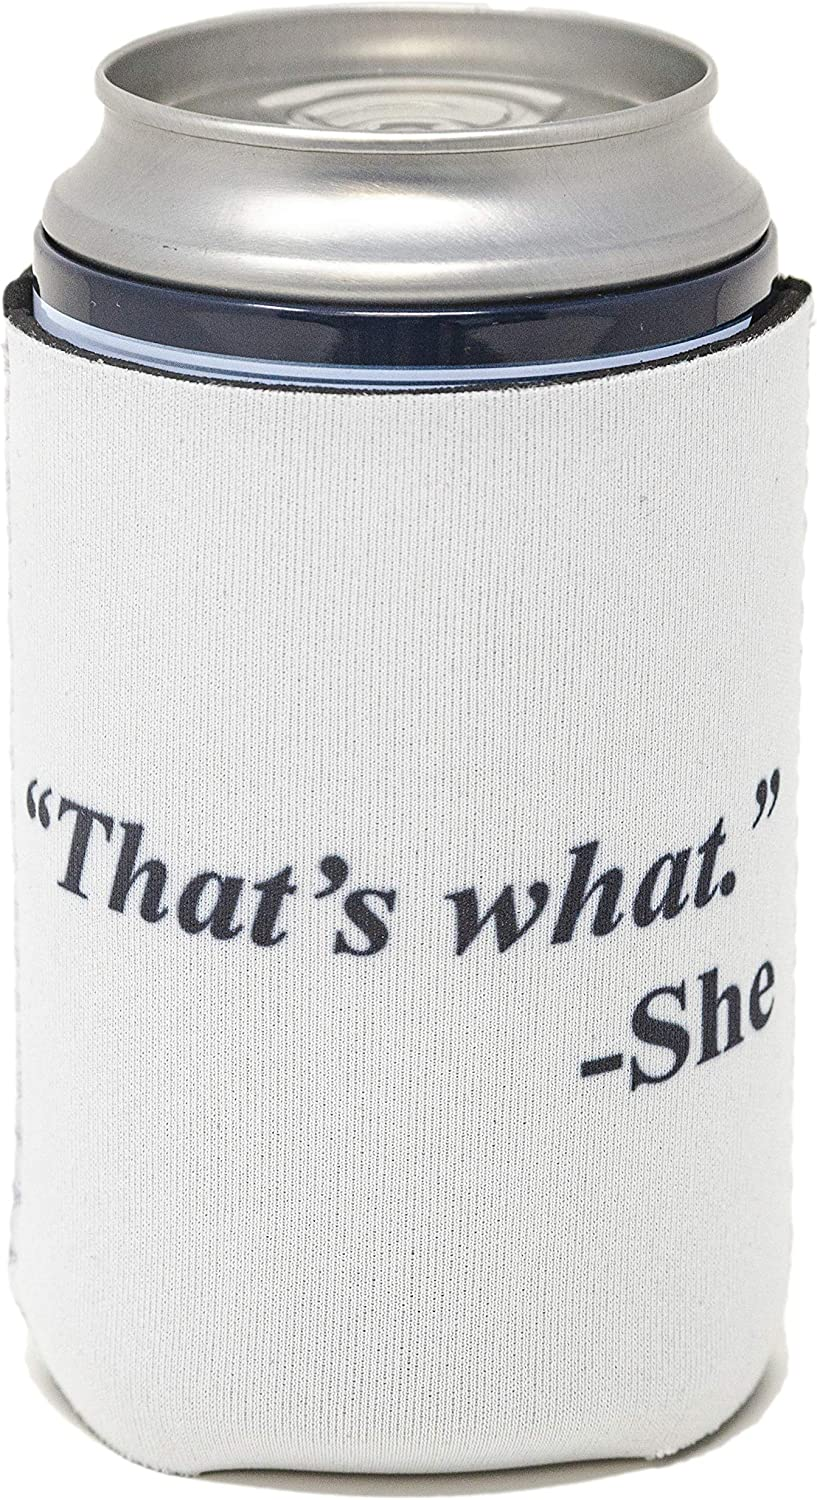 Funny Guy Mugs That's What She Said Collapsible Neoprene Can Coolie - Drink Cooler